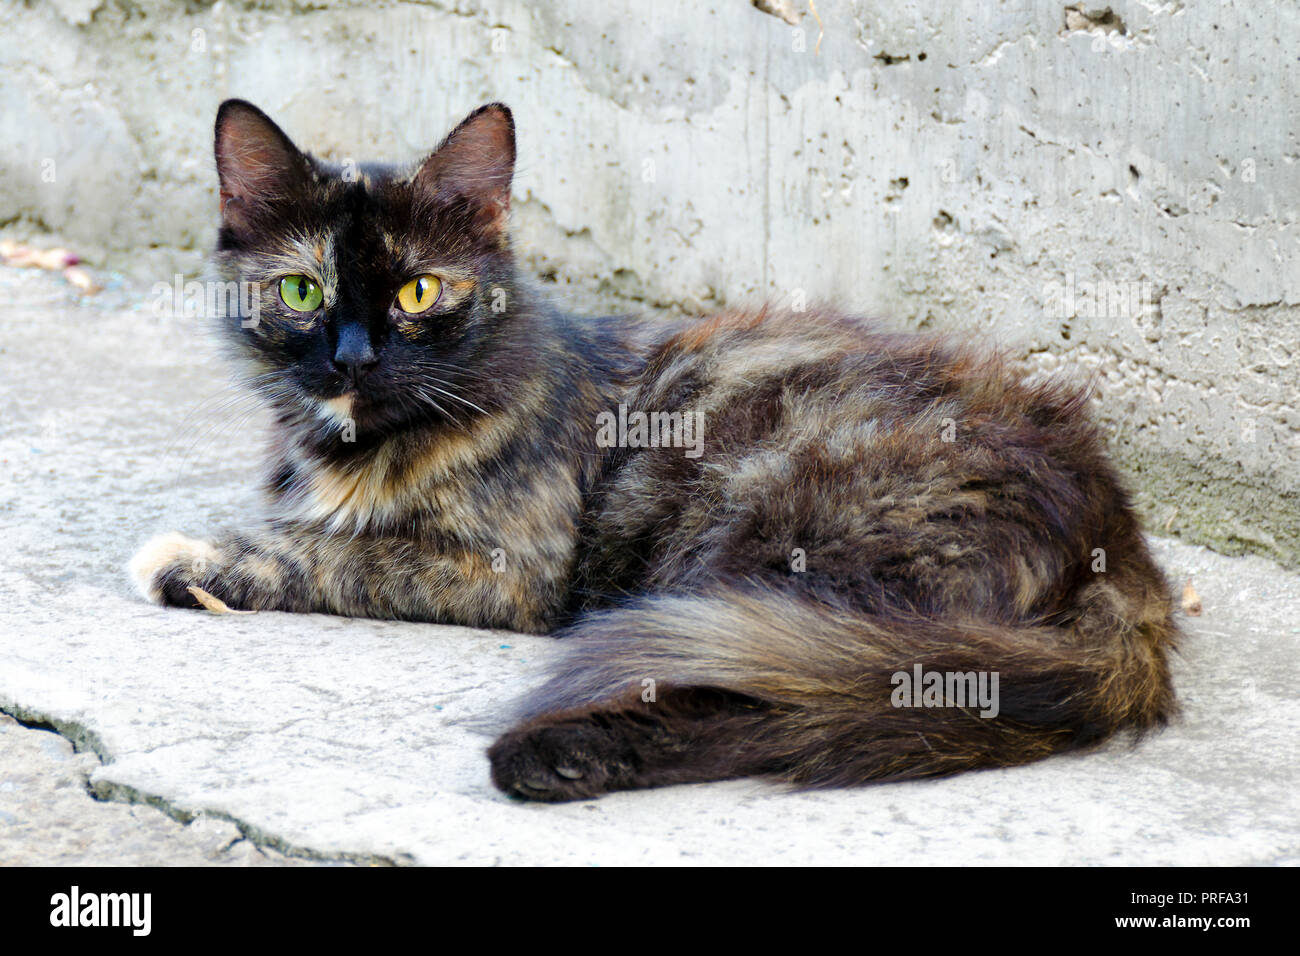 Homeless red black cat with eyes of different colors. Portrait of two-colored cat lying on outdoor. Stock Photo